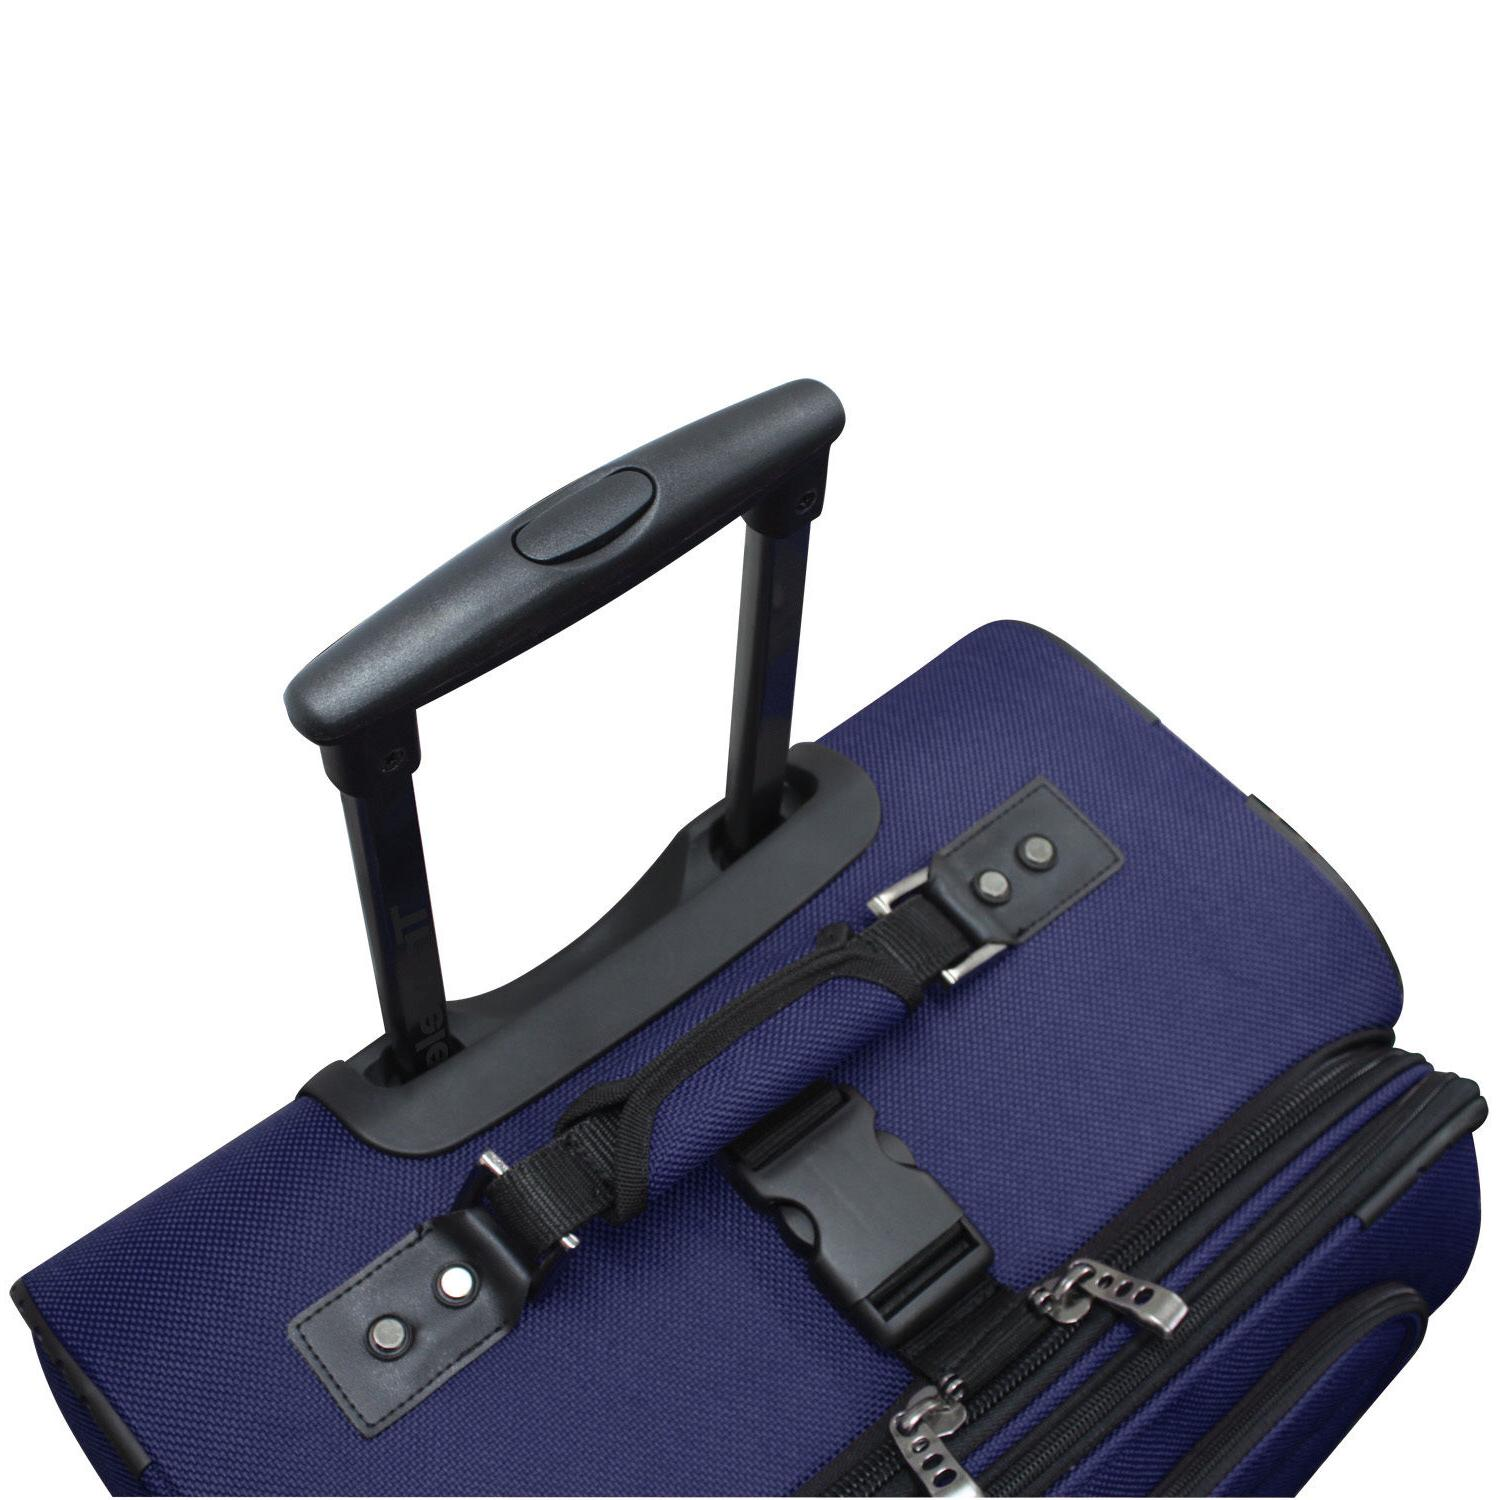 Traveler's Choice Conventional Luggage Suitcase